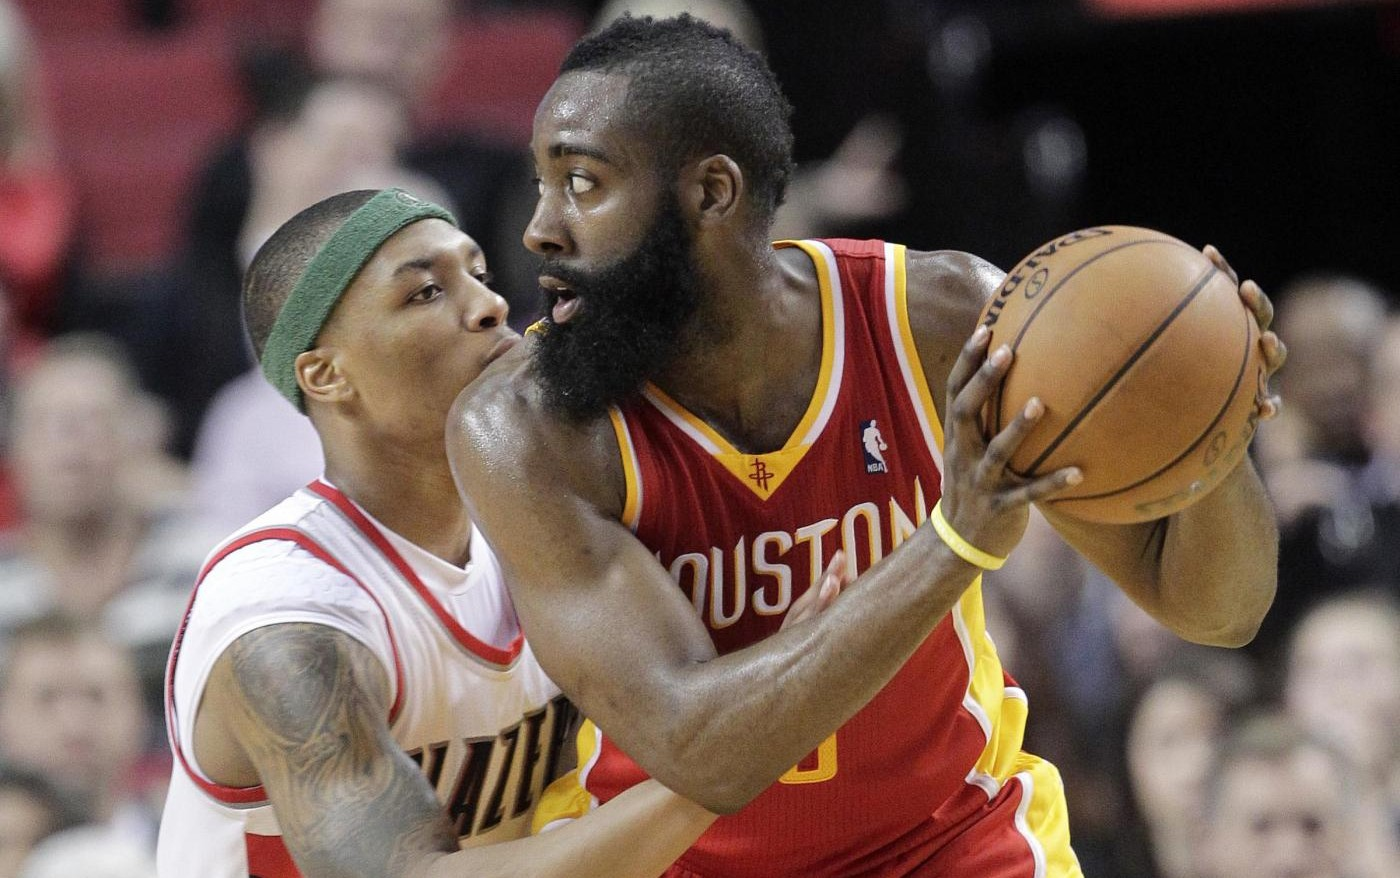 Nba pronostici 18 novembre, Rockets-Kings